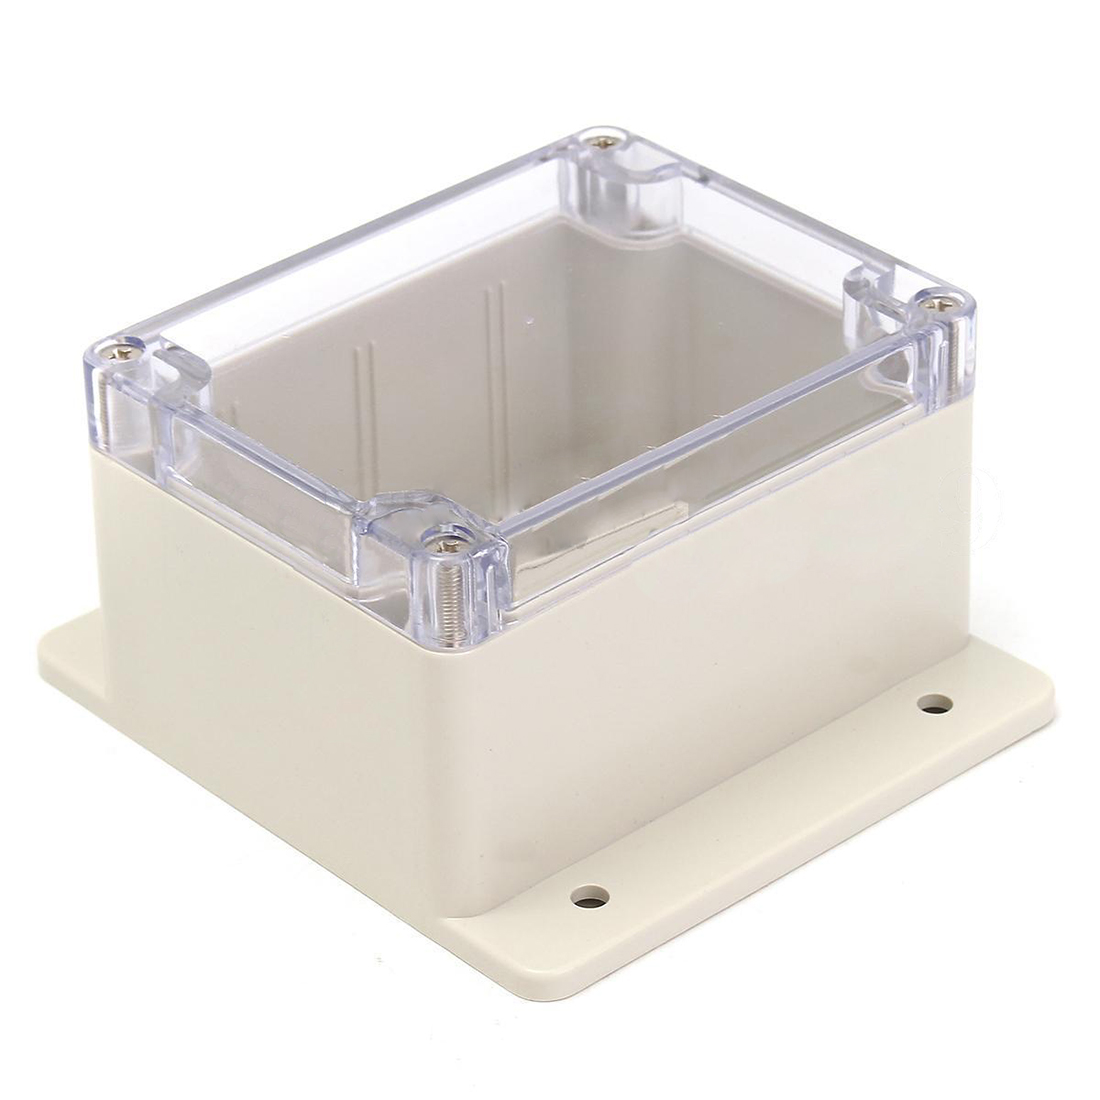 Waterproof Plastic Electronic Junction Project Box Enclosure Case 115x90x68mm 1 piece free shipping plastic enclosure for wall mount amplifier case waterproof plastic junction box 110 65 28mm